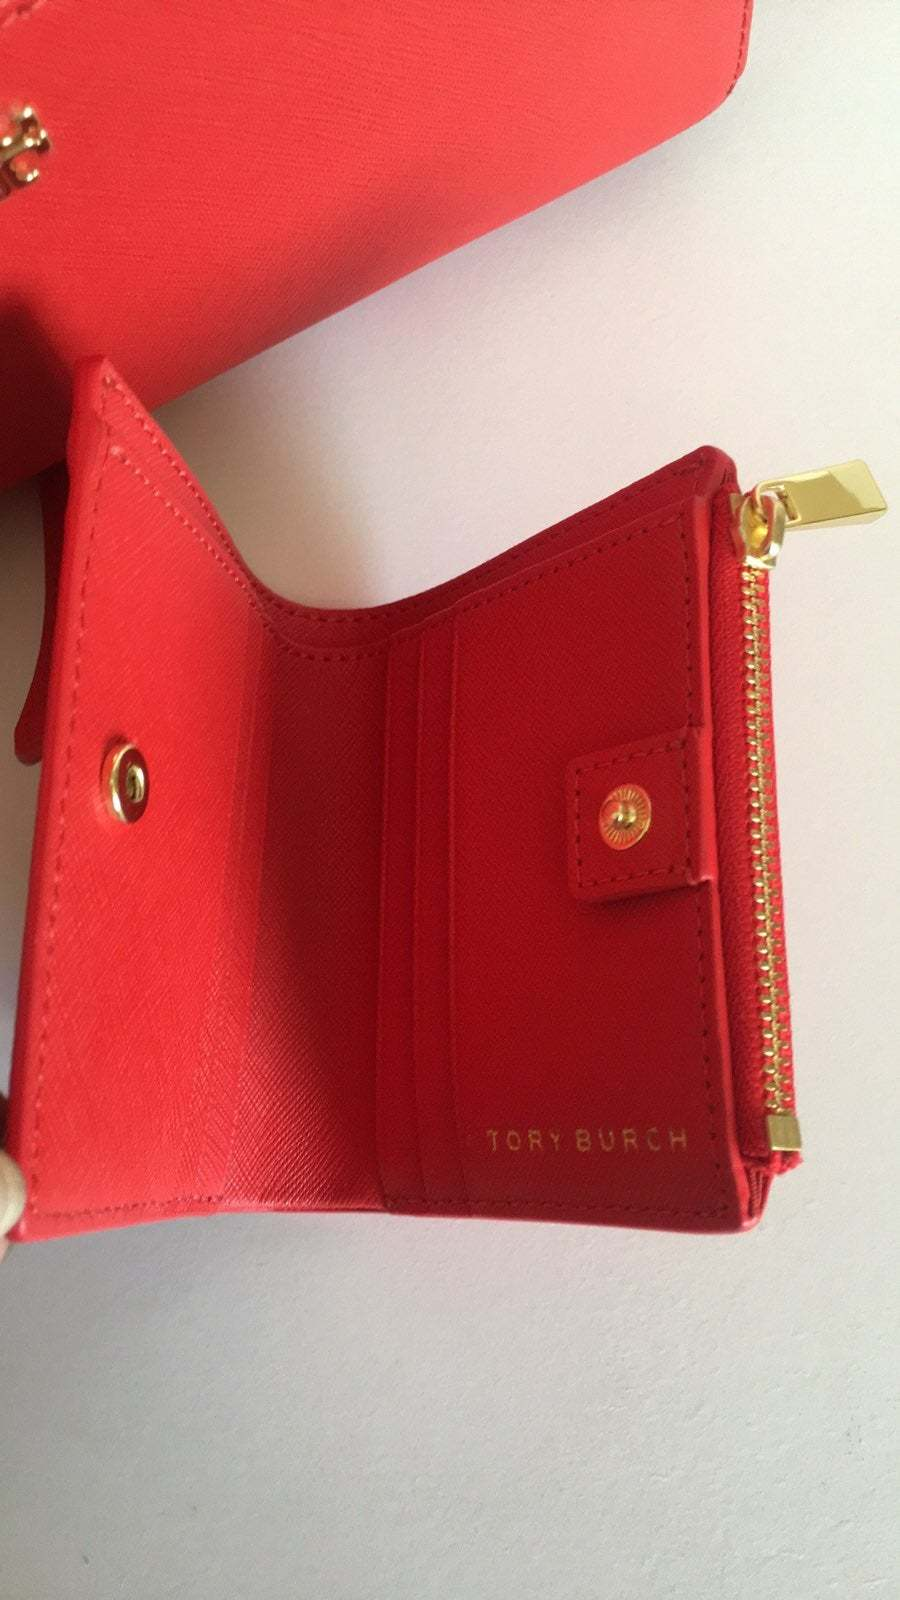 Tory Burch Emerson Backpack Mini Wallet